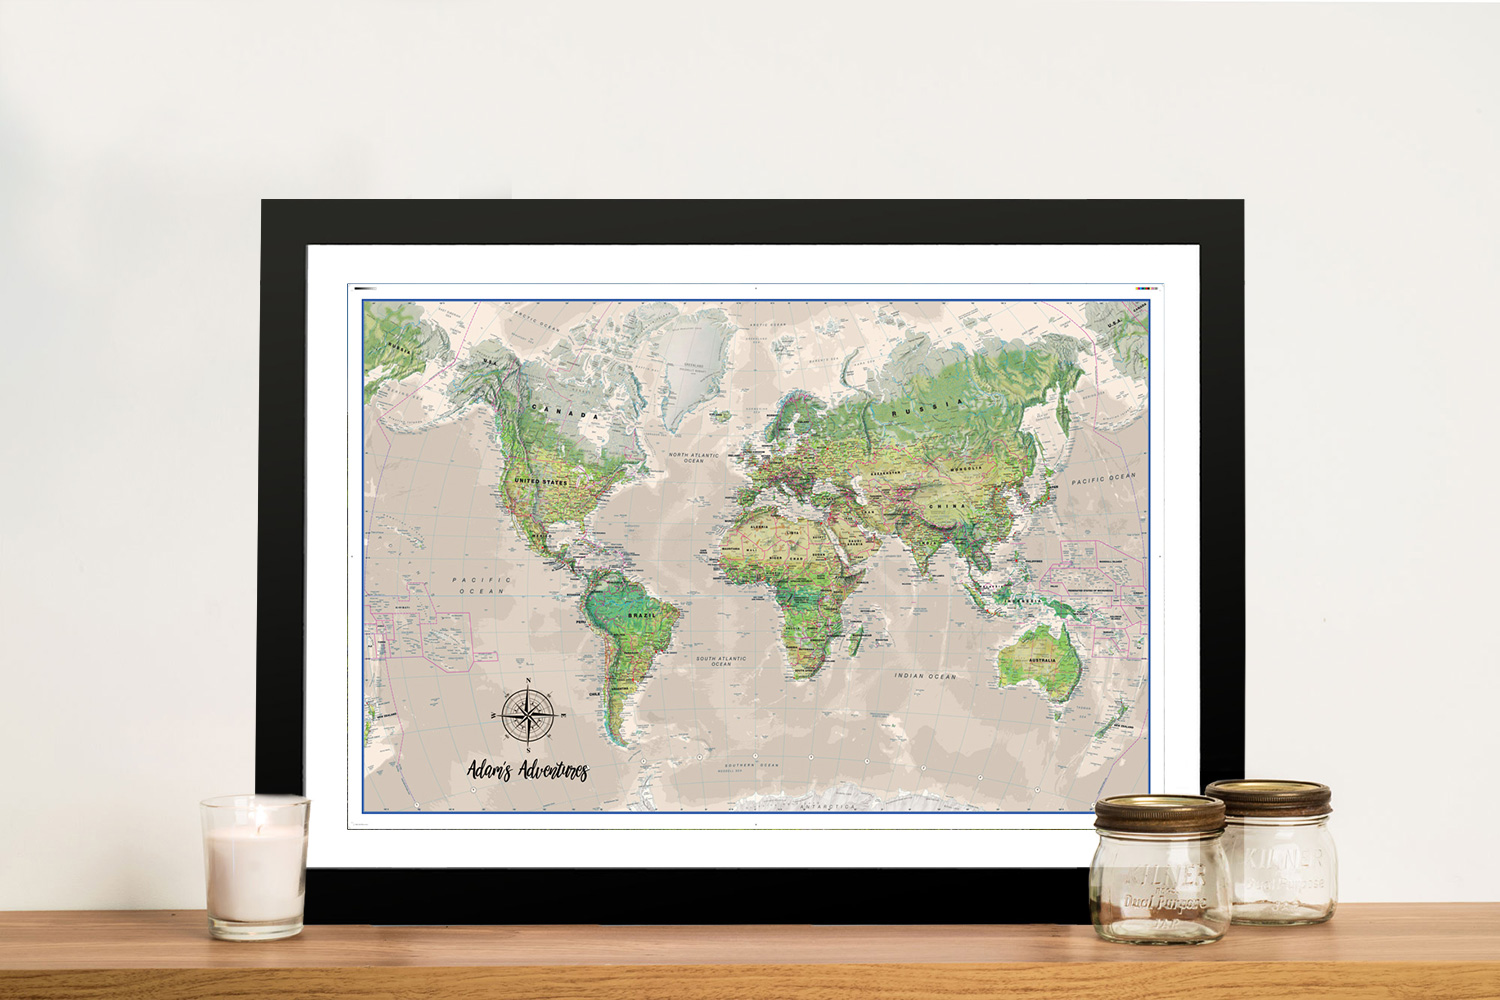 Custom Poseidon Push Pin World Map Framed Wall Art | Poseidon Push Pin Travel Map